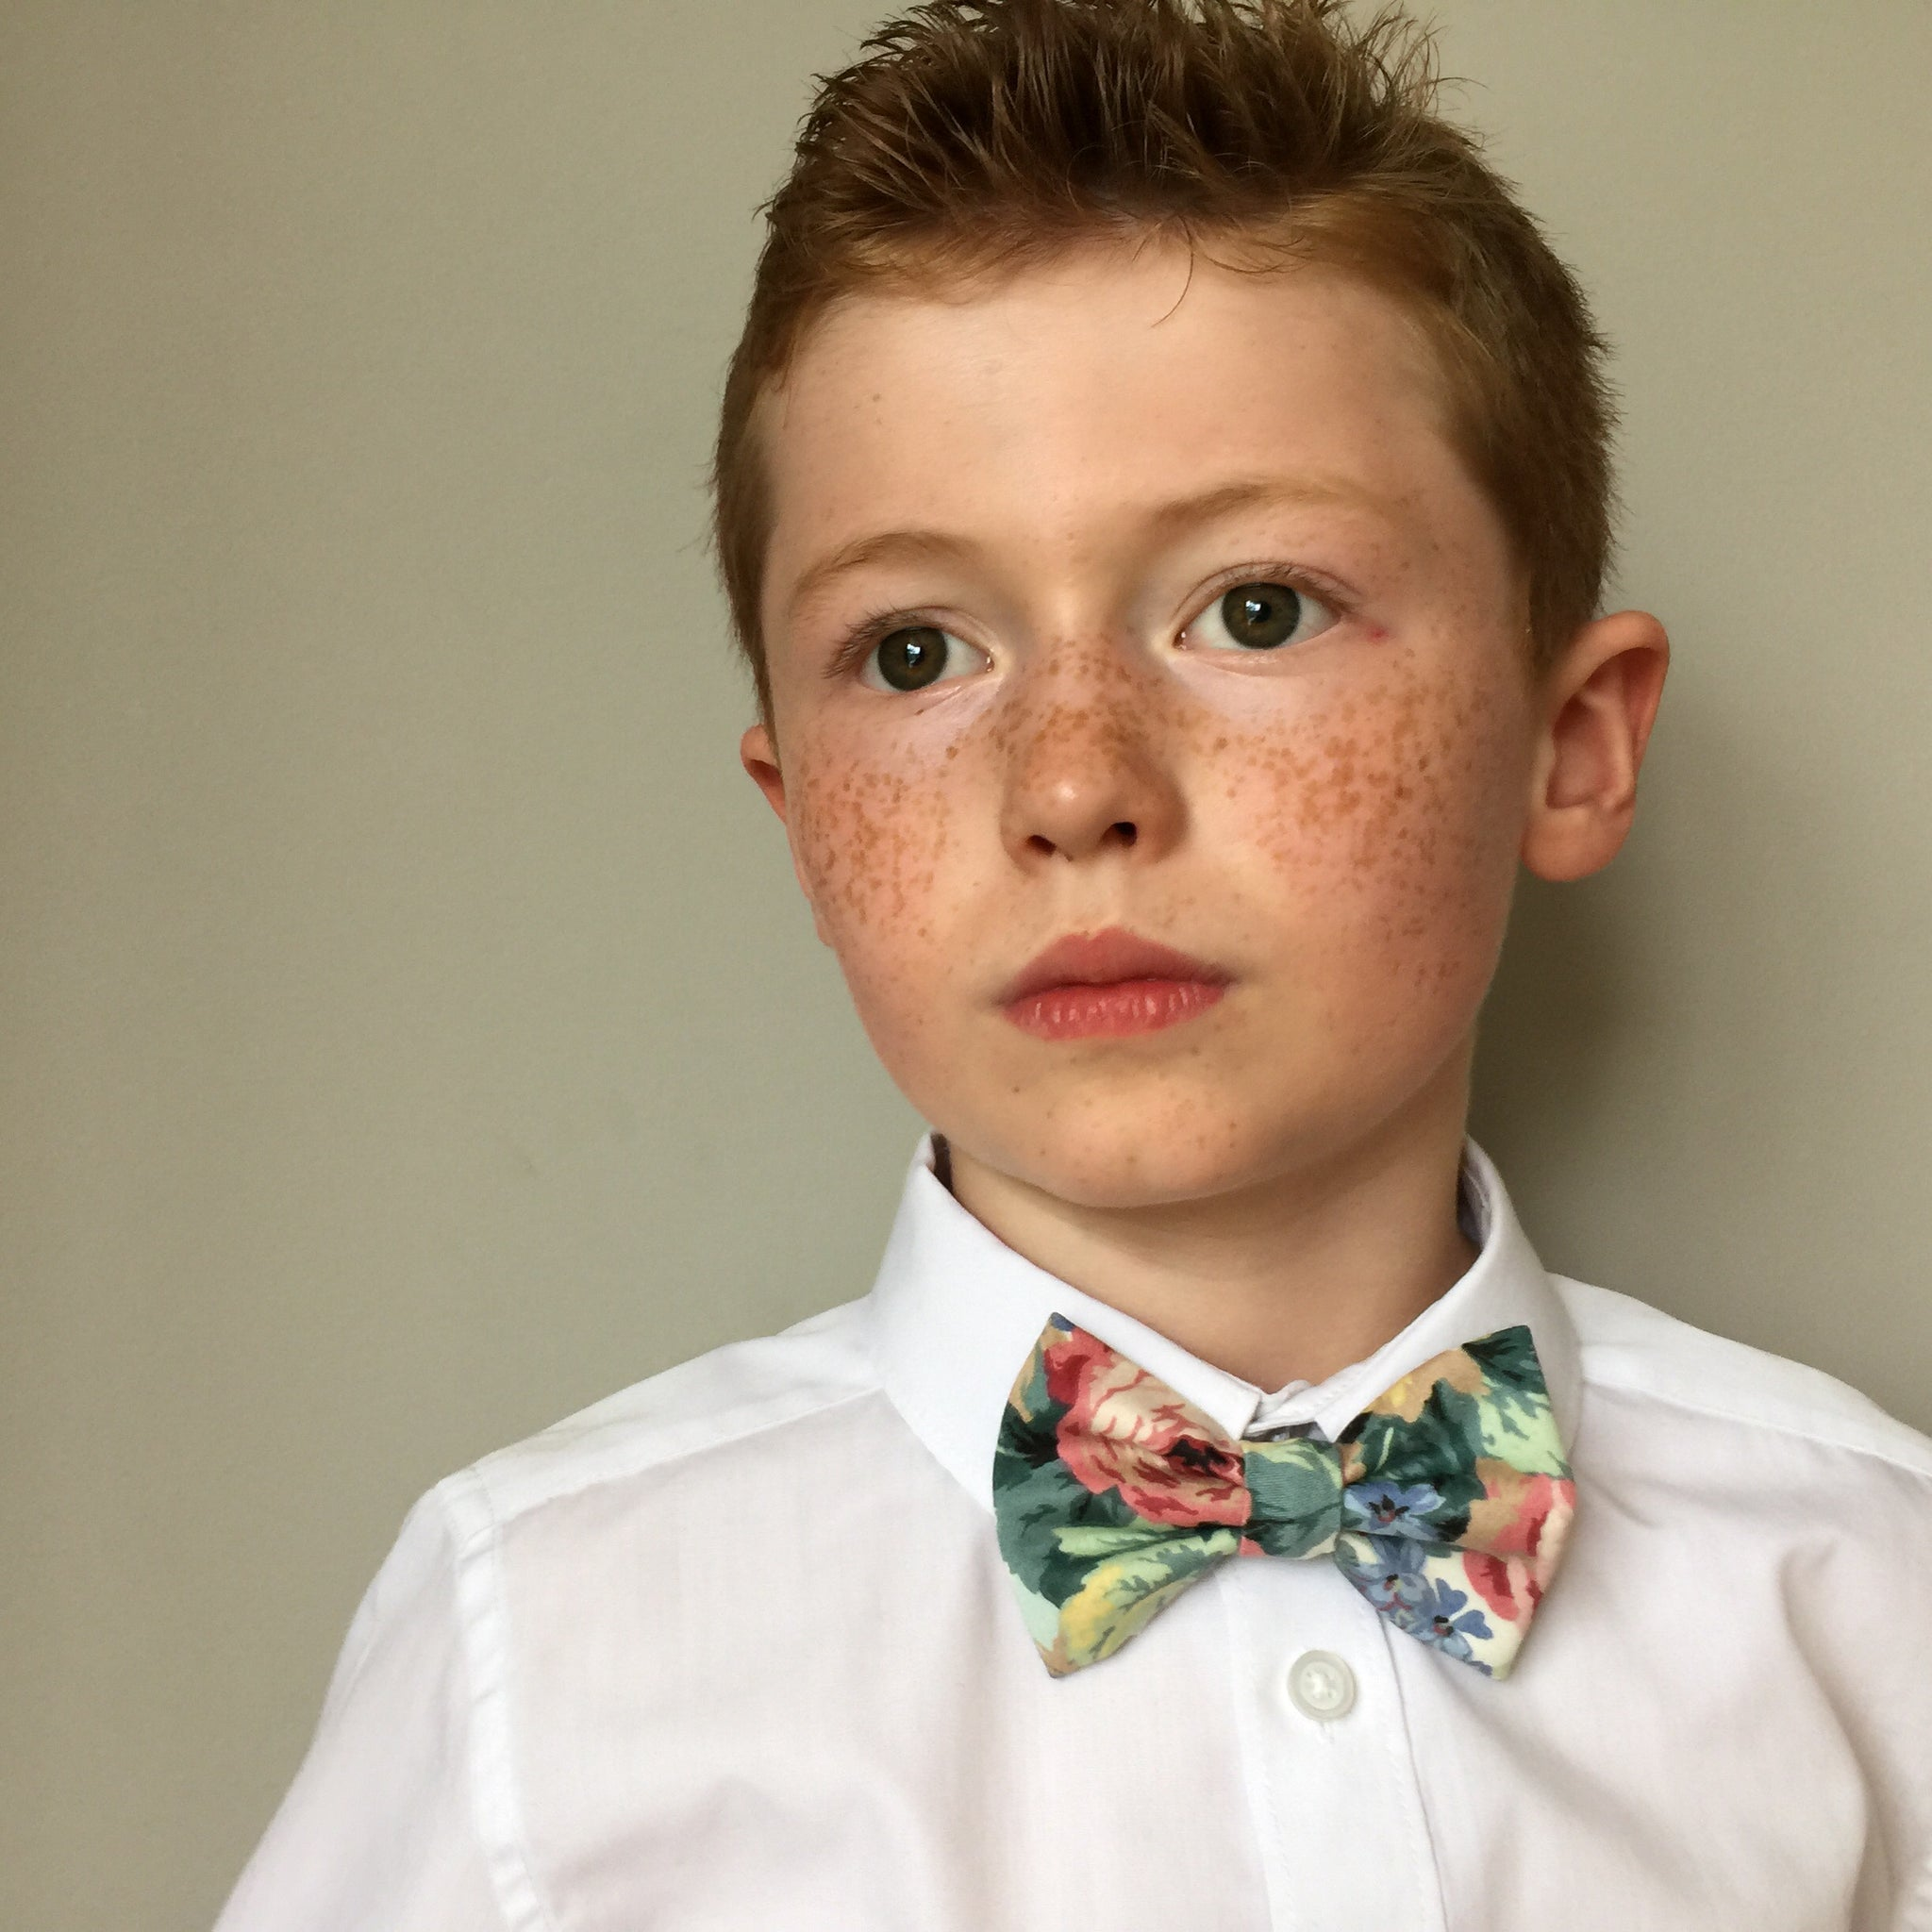 Boys floral bow tie, boys bow tie, mens bow tie, bow ties made to order, pageboy bow tie, groom bowtie - chaucer